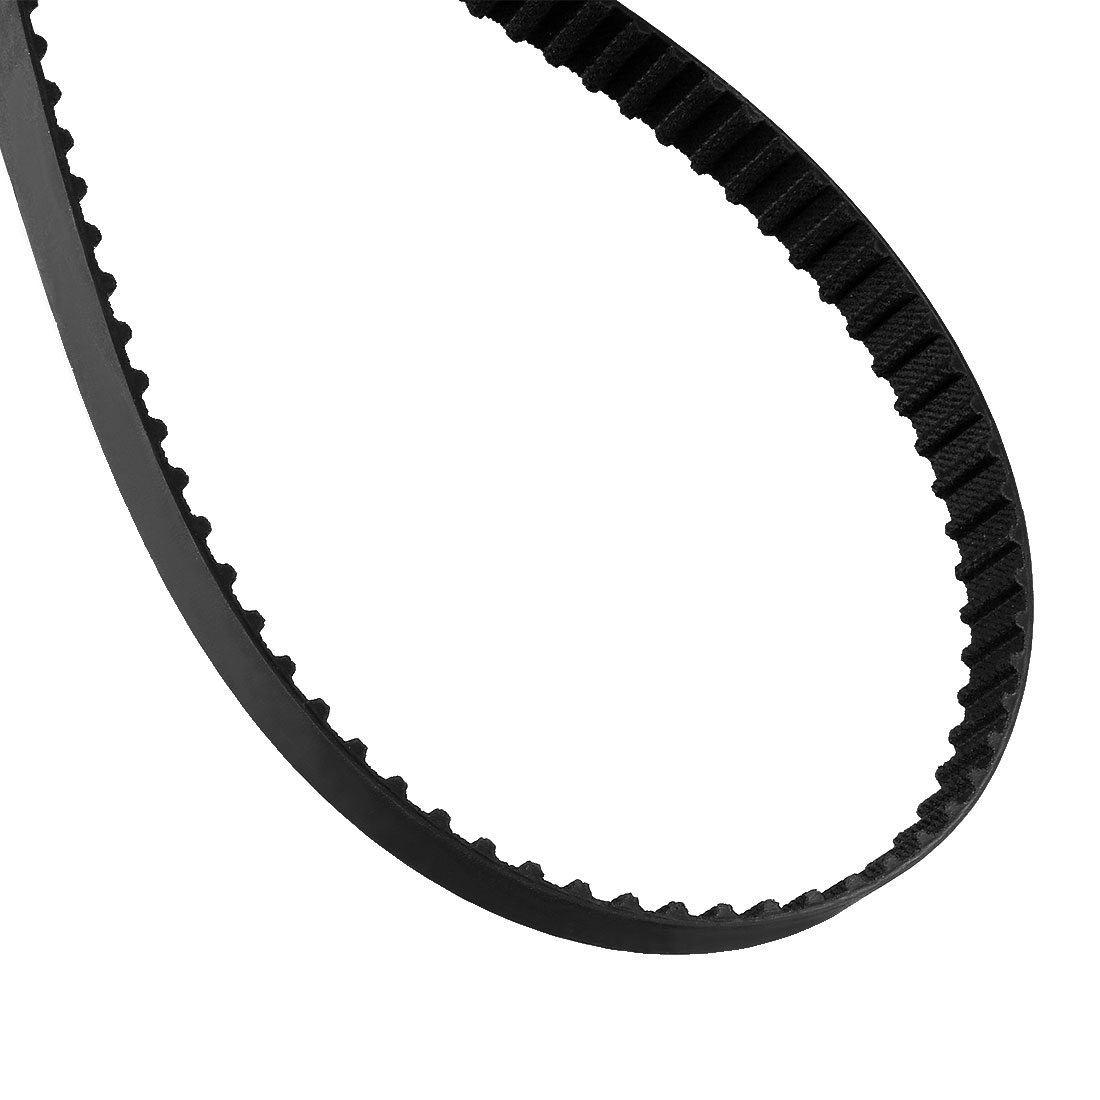 156XL 78 Teeth Synchronous Closed Loop Rubber Timing Belt 10mm Width 396mm Perimeter